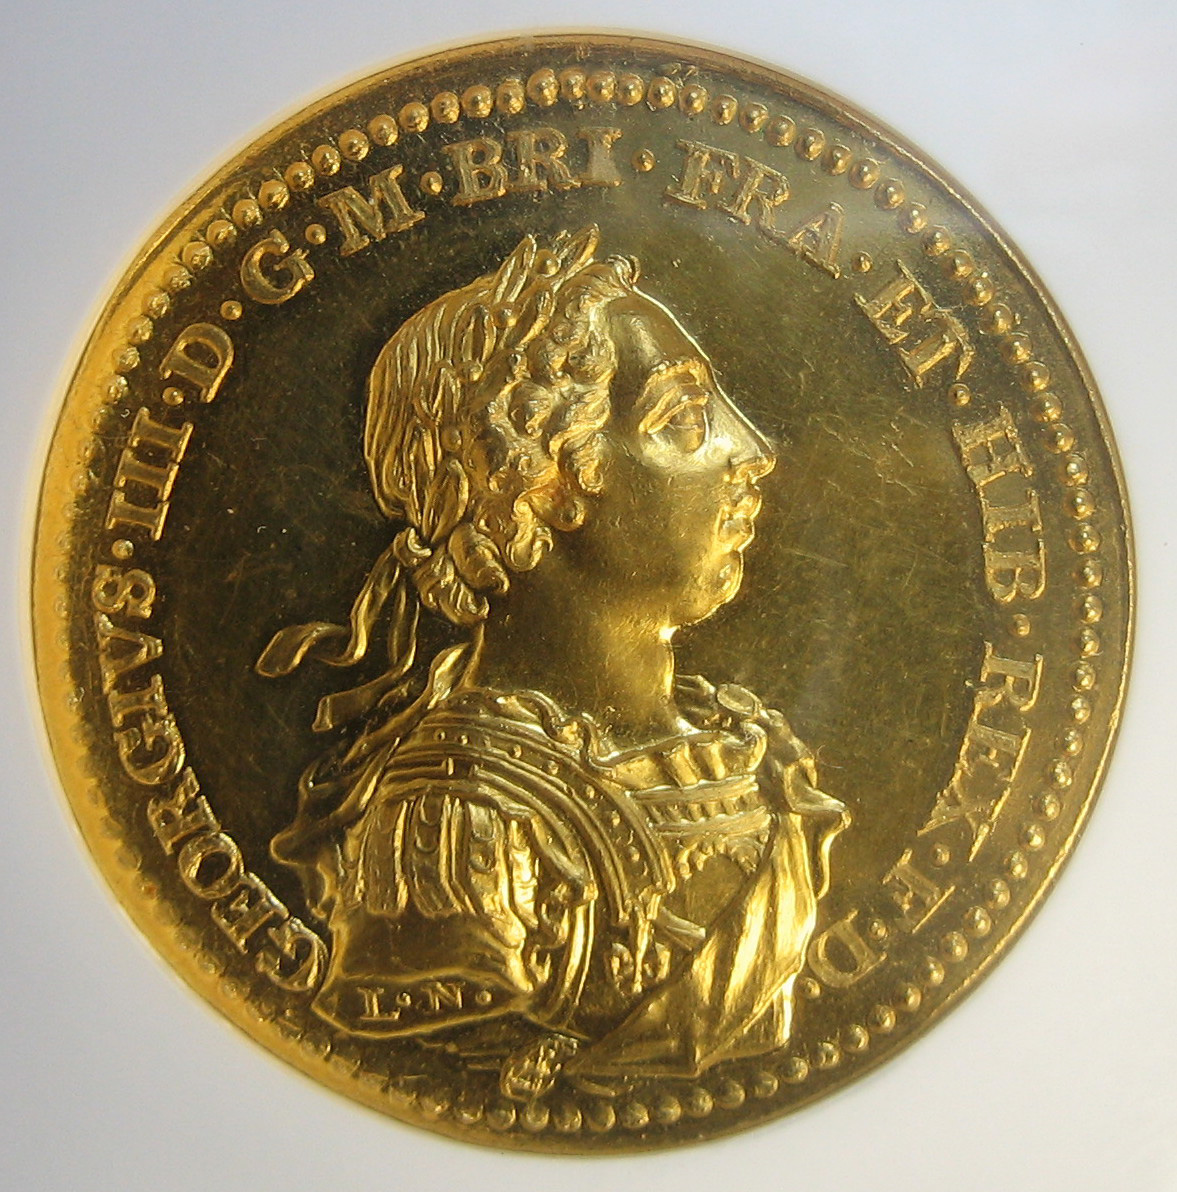 http://www.gold-stater.com/images/royal/IMG_0165ageorgeIII.JPG